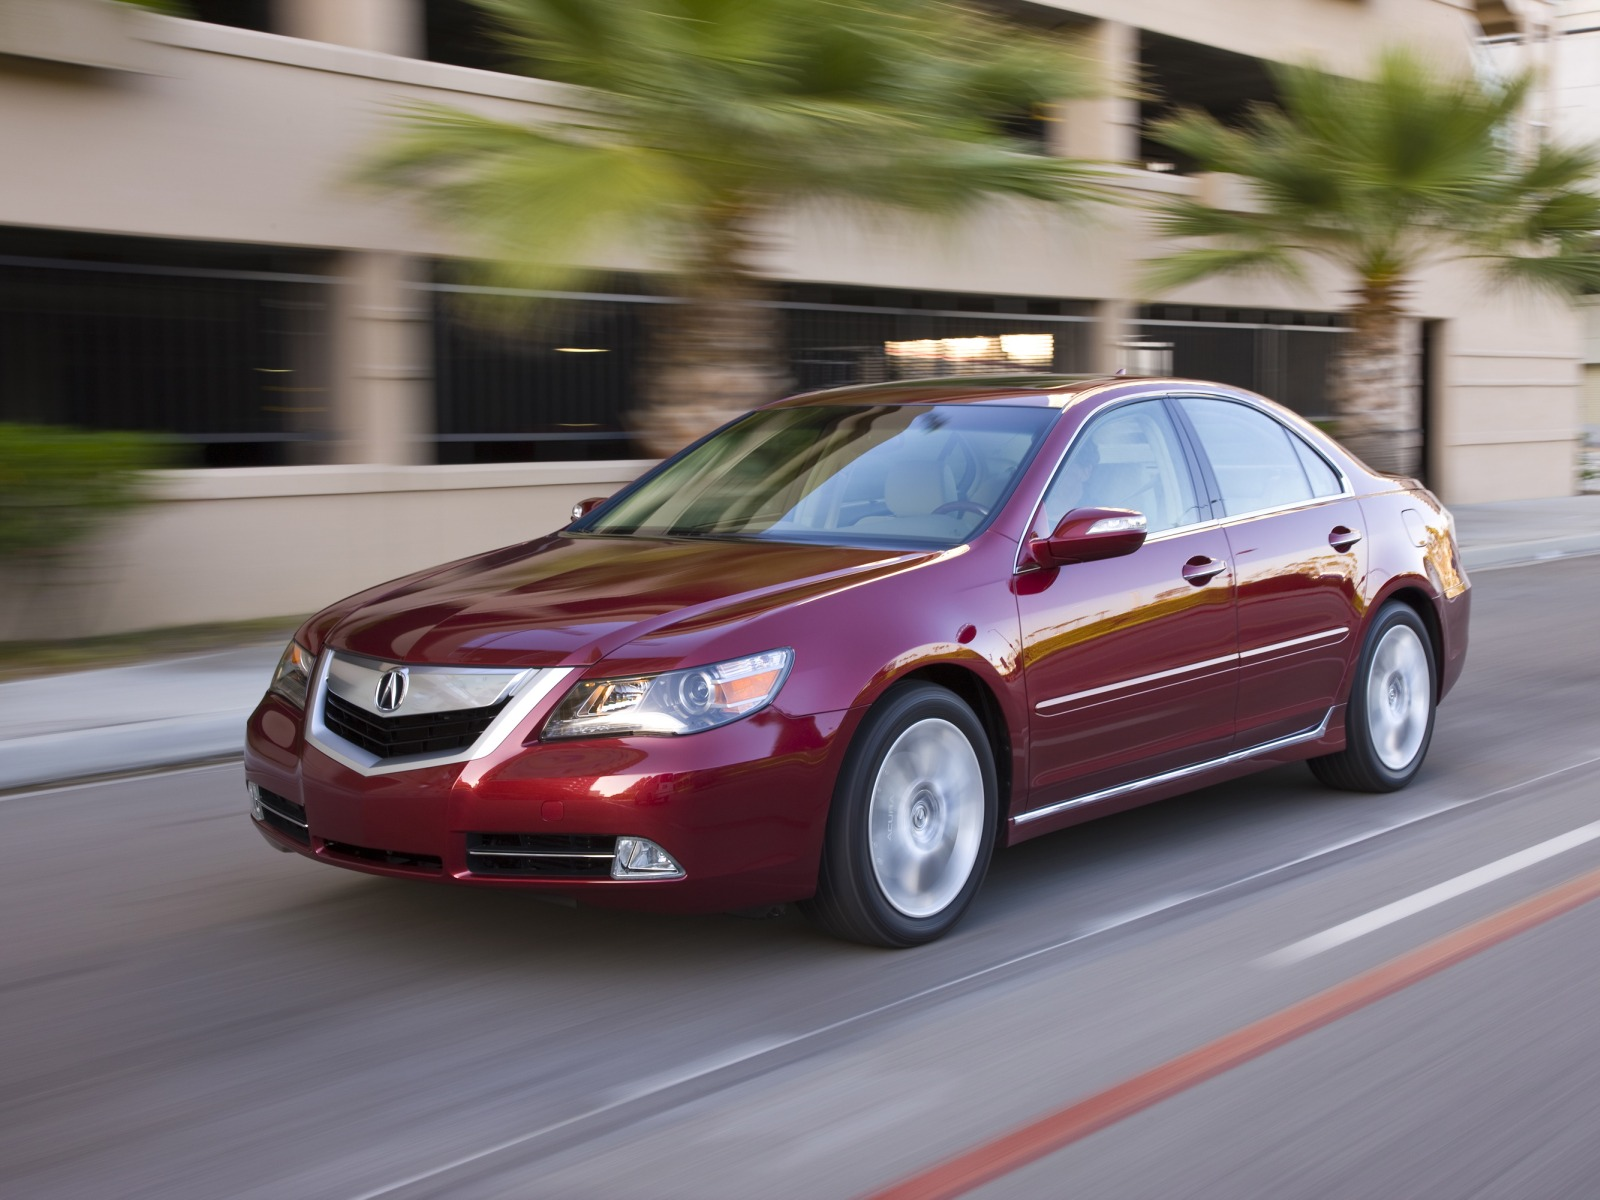 2009 acura rl pictures specifications wallpapers. Black Bedroom Furniture Sets. Home Design Ideas